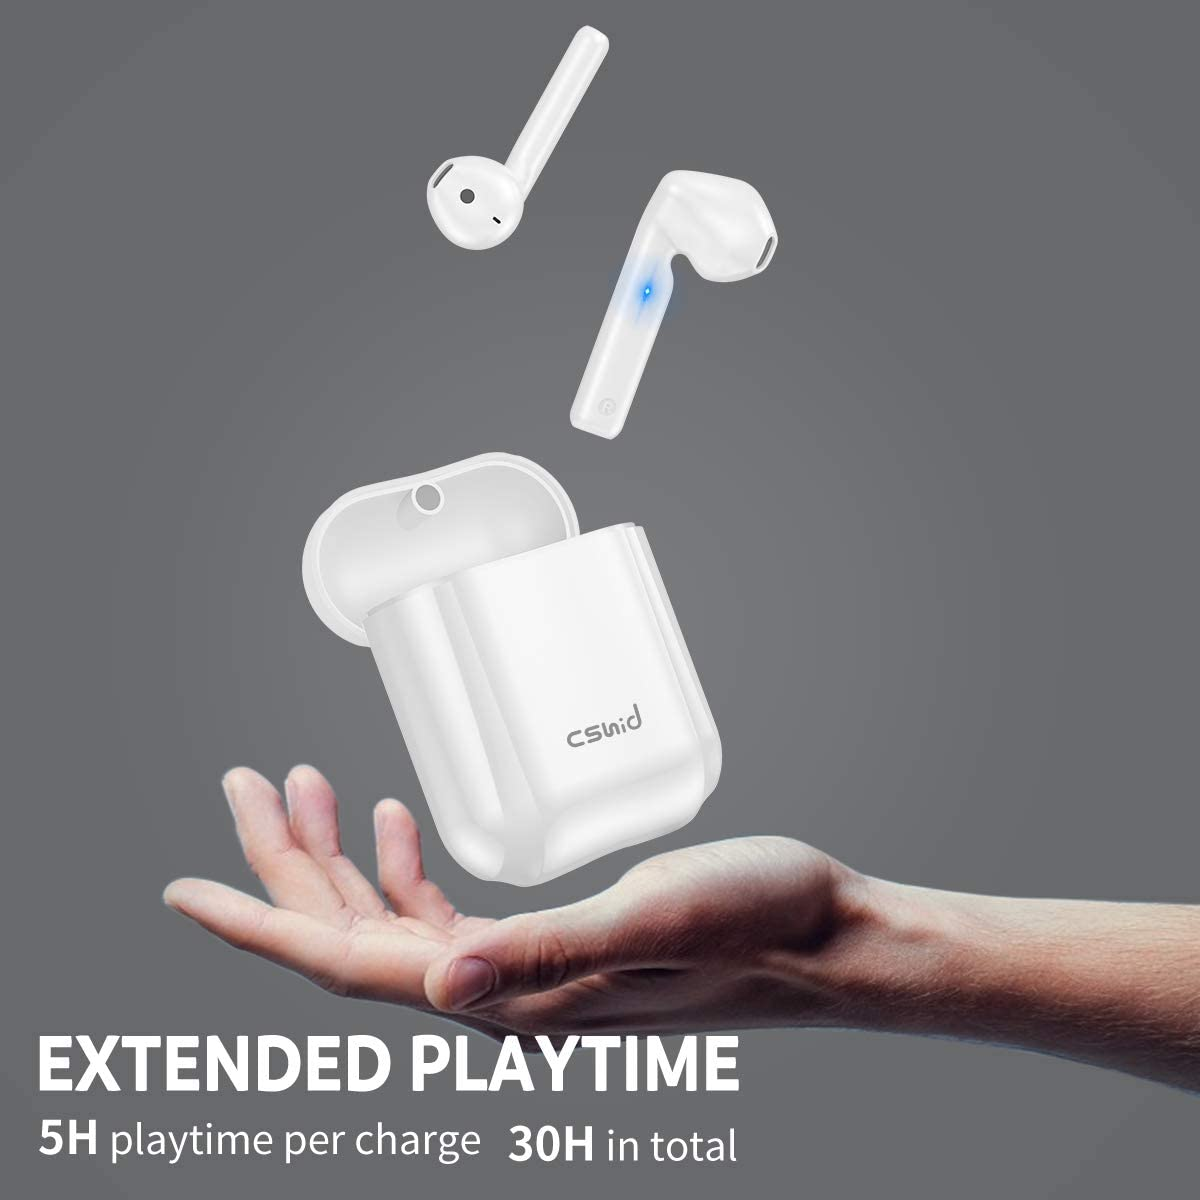 in-Ear Headset for iPhone Android Cshidworld Bluetooth 5.0 Earbuds Noise Cancelling Wireless Headphones 30H Cycle Playtime Hi-Fi APT-X CVC8.0 Sweatproof Earphones with mic Wireless Earbuds